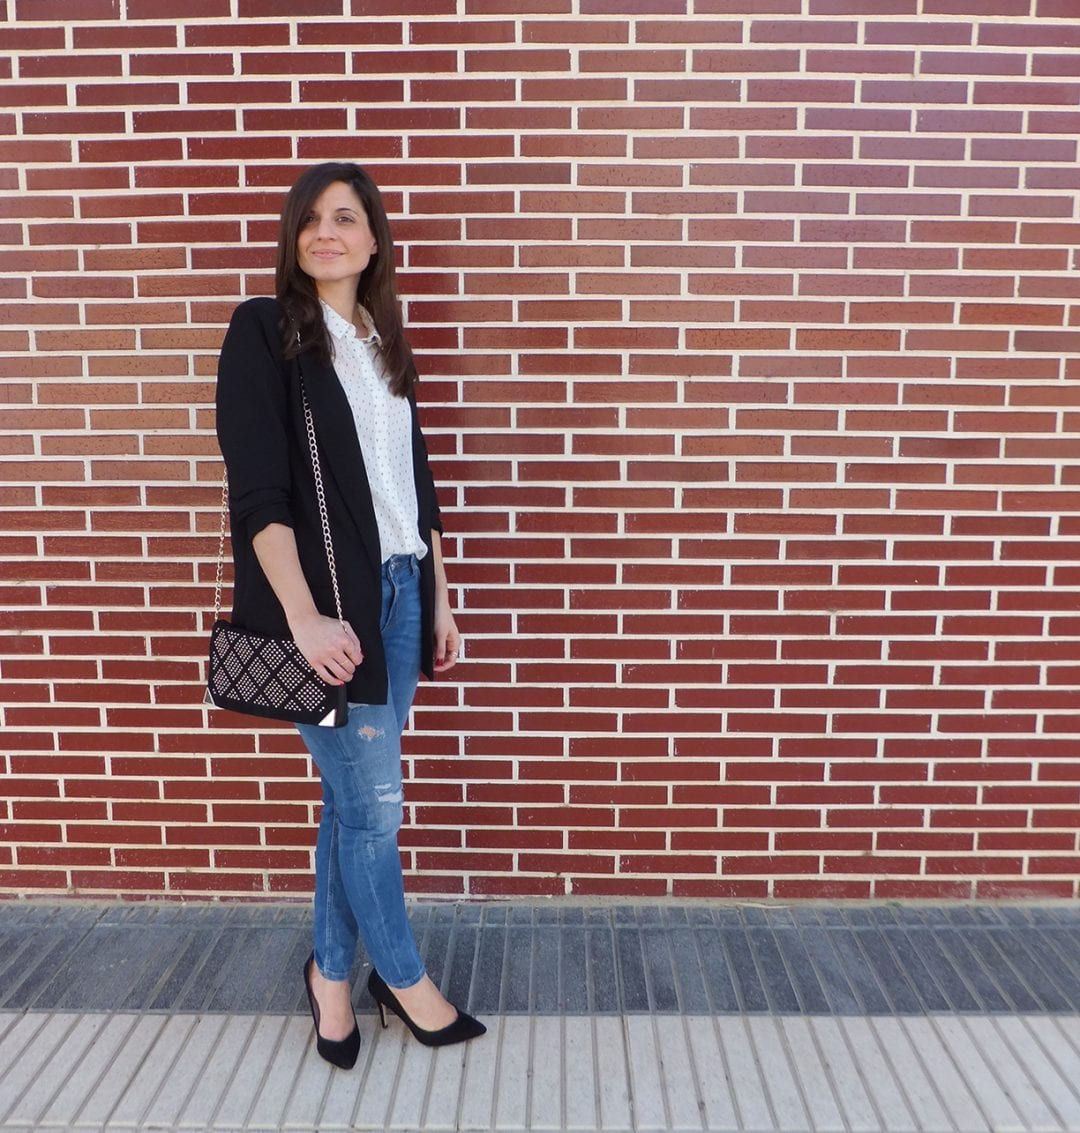 combinar blusa estampada y blazer larga - how to wear long blazer and print blouse - vespa - fashion blogger - bloguera de moda